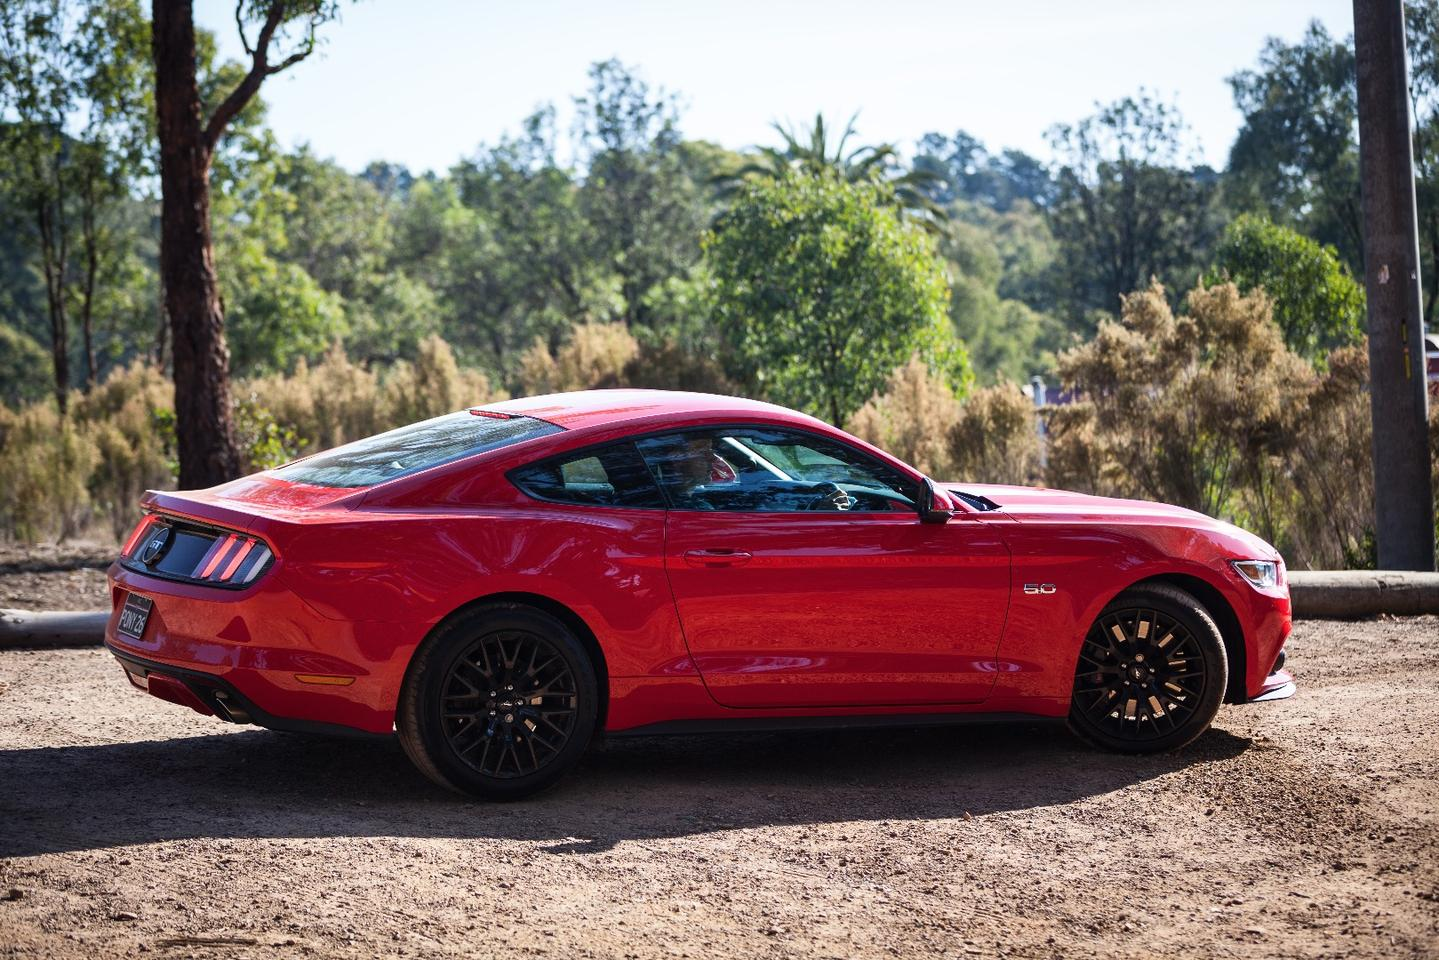 The 'Stang draws plenty of attention to itself, not least in our test car's Race Red finish